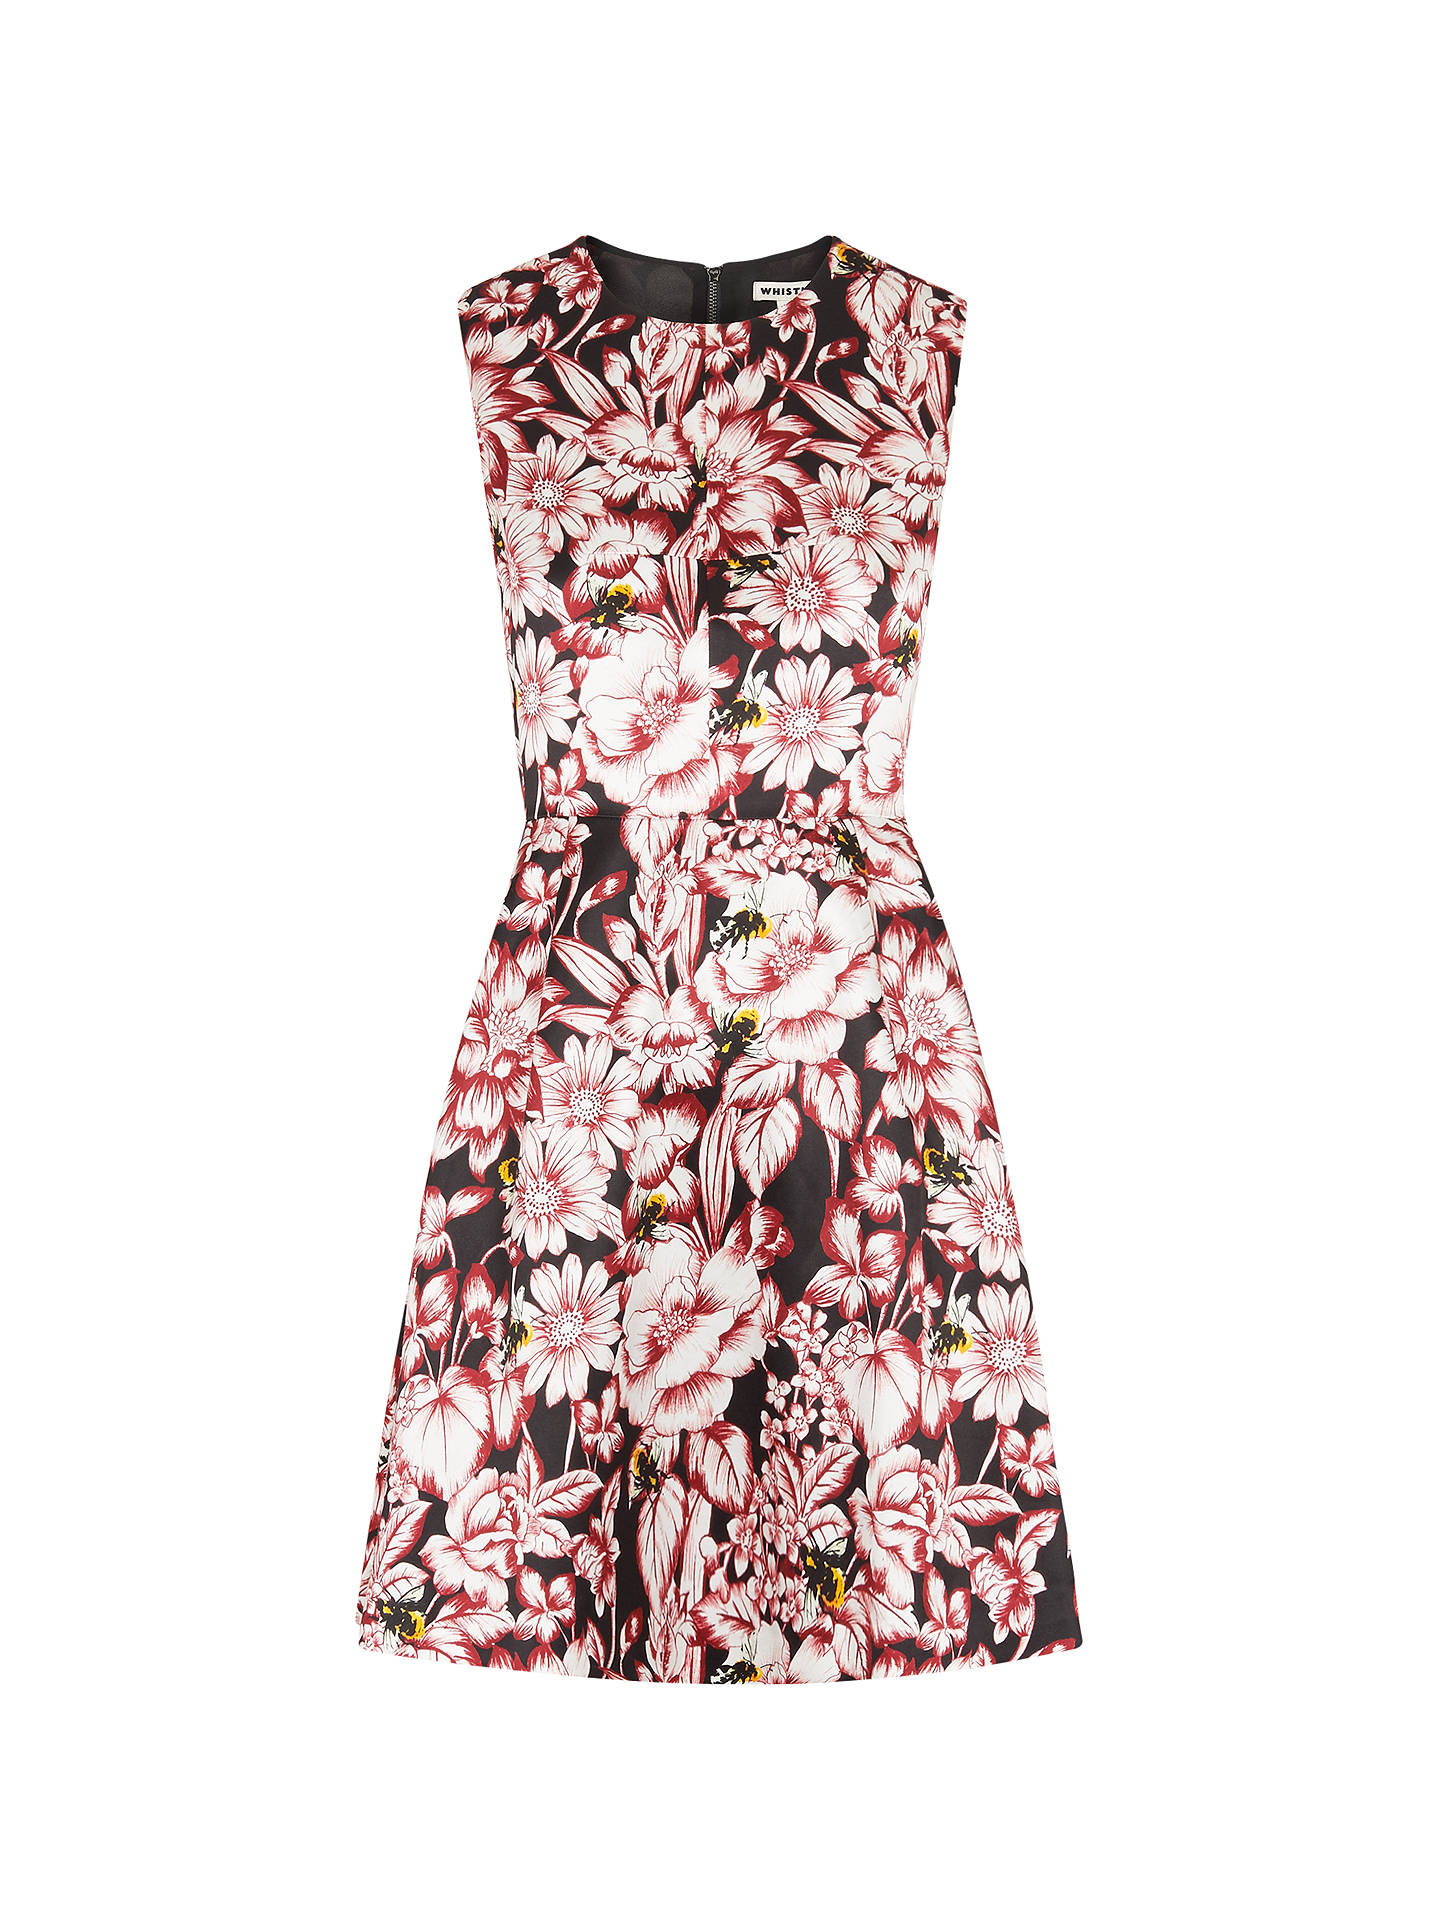 Buy Whistles Floral Bee Willow Dress, Multi, 6 Online at johnlewis.com